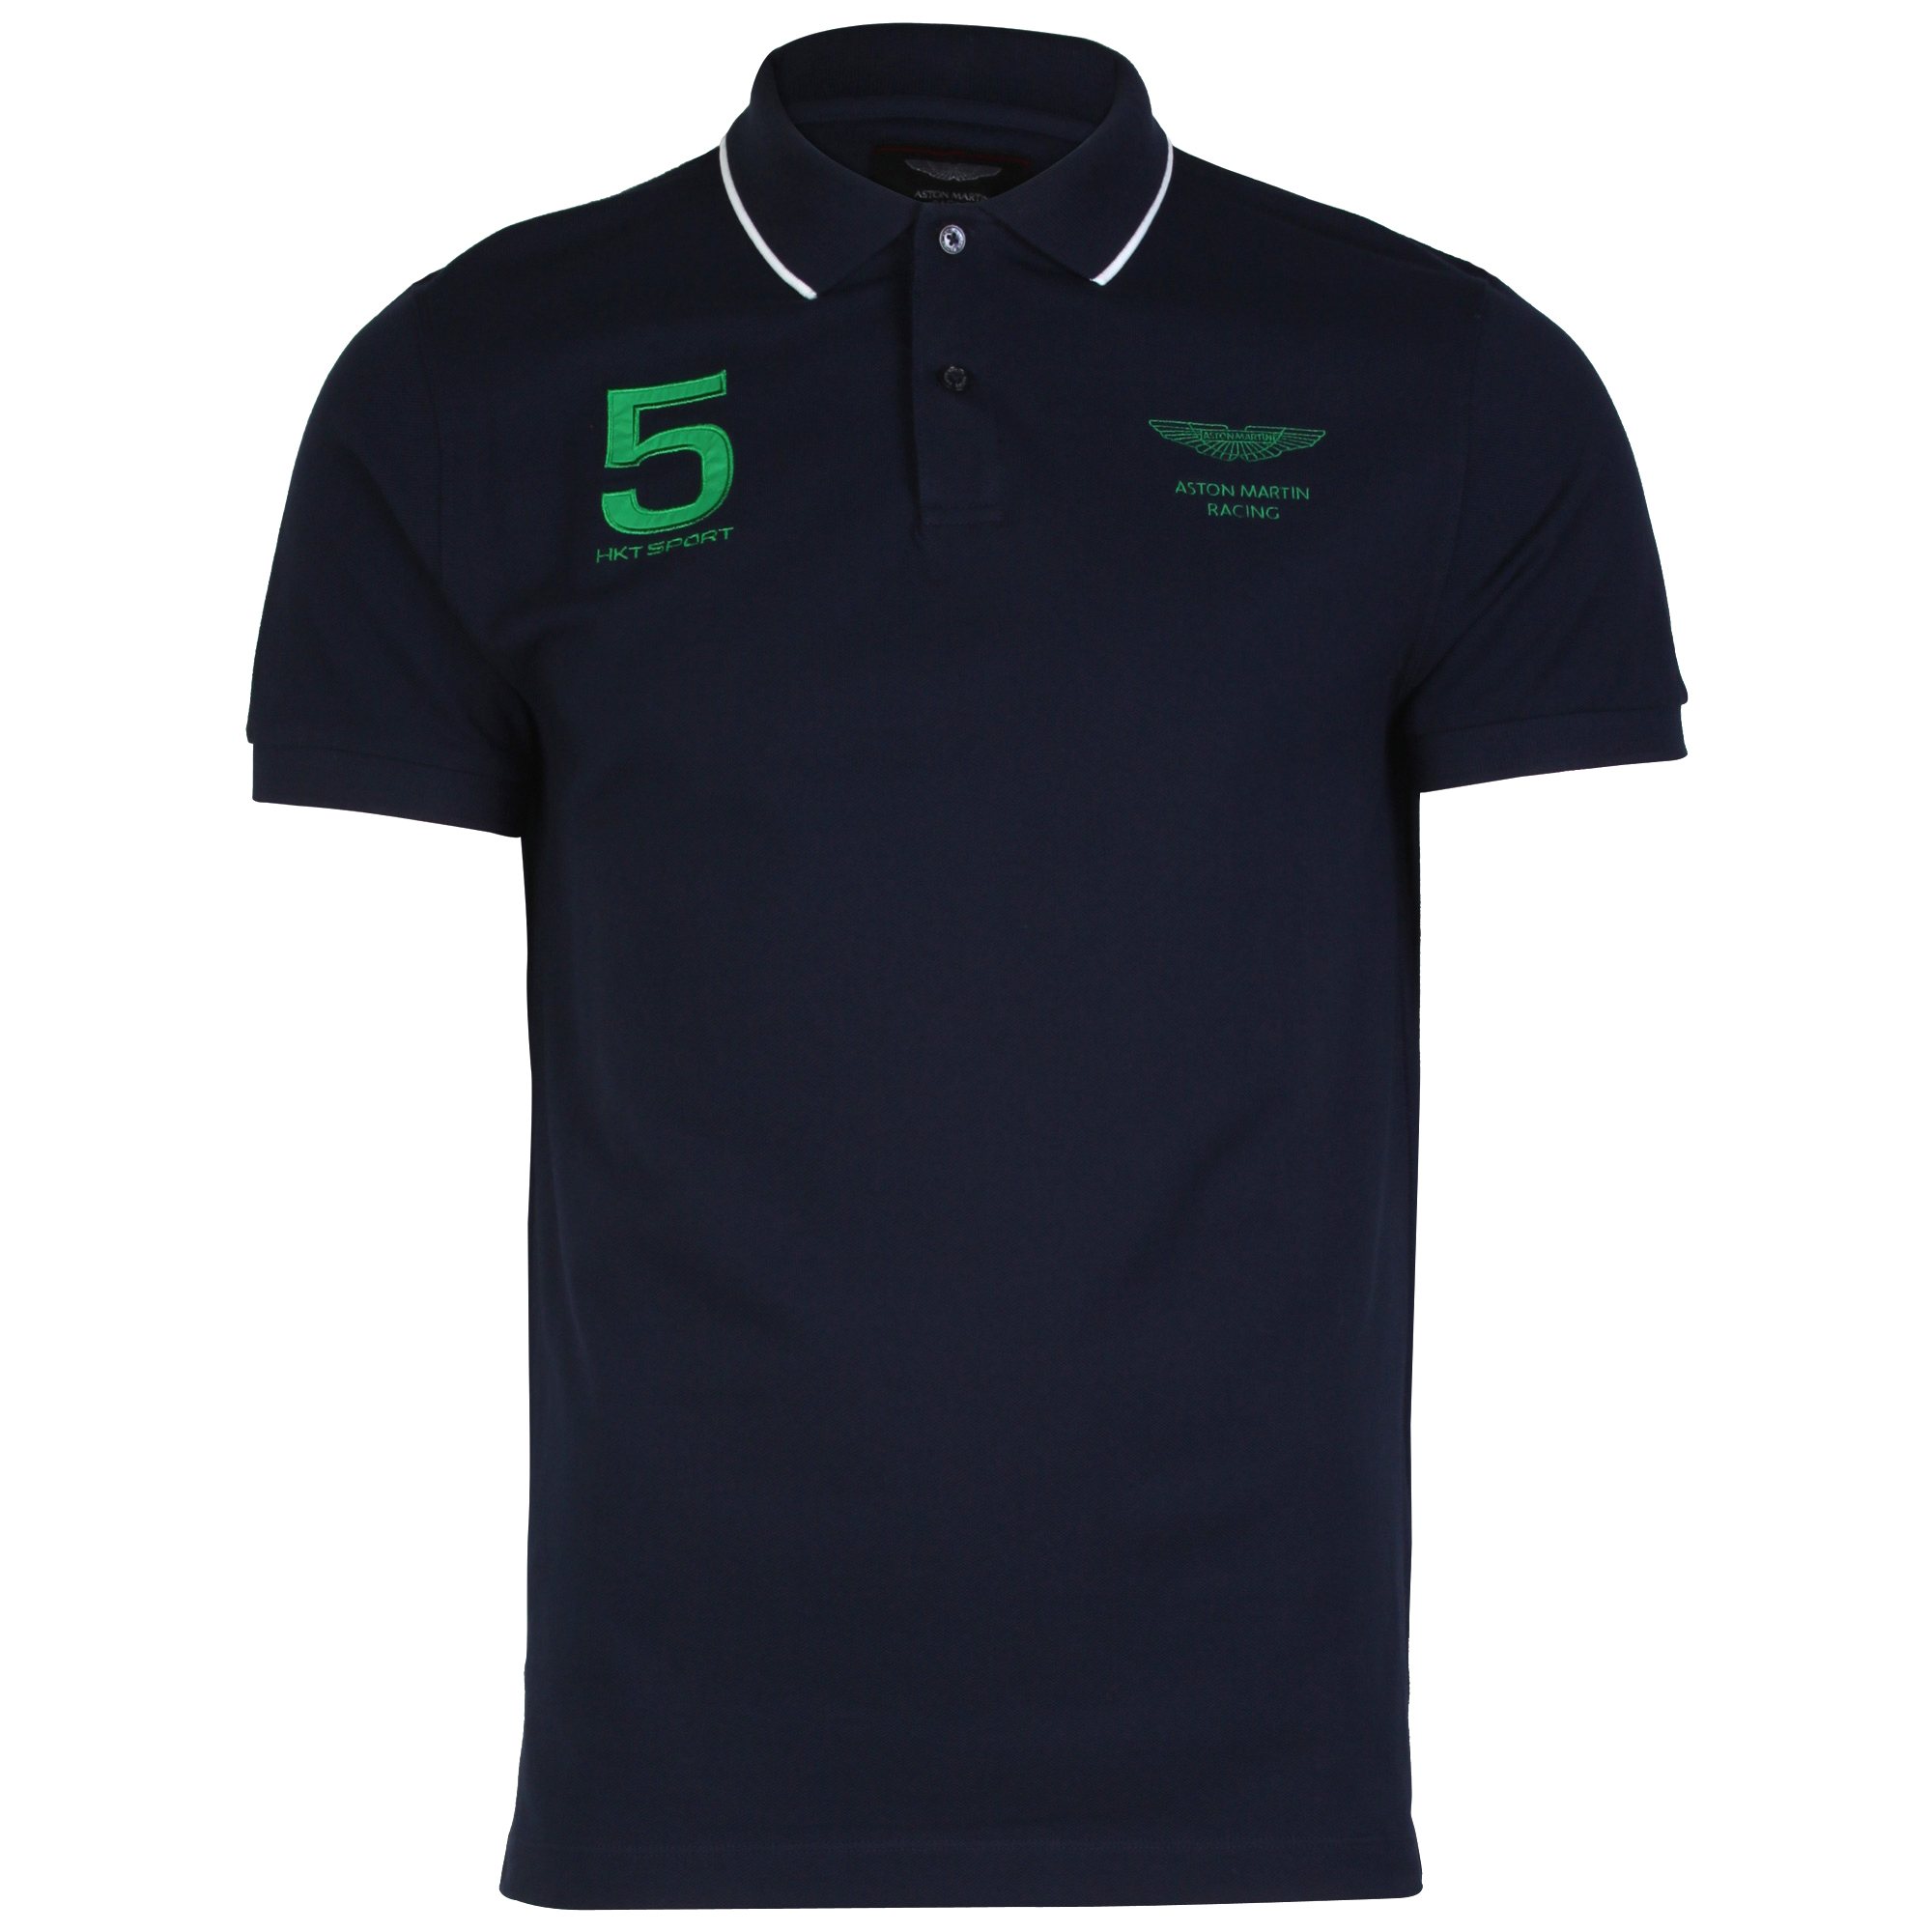 hackett aston martin racing undercollar mens polo shirt ebay. Black Bedroom Furniture Sets. Home Design Ideas